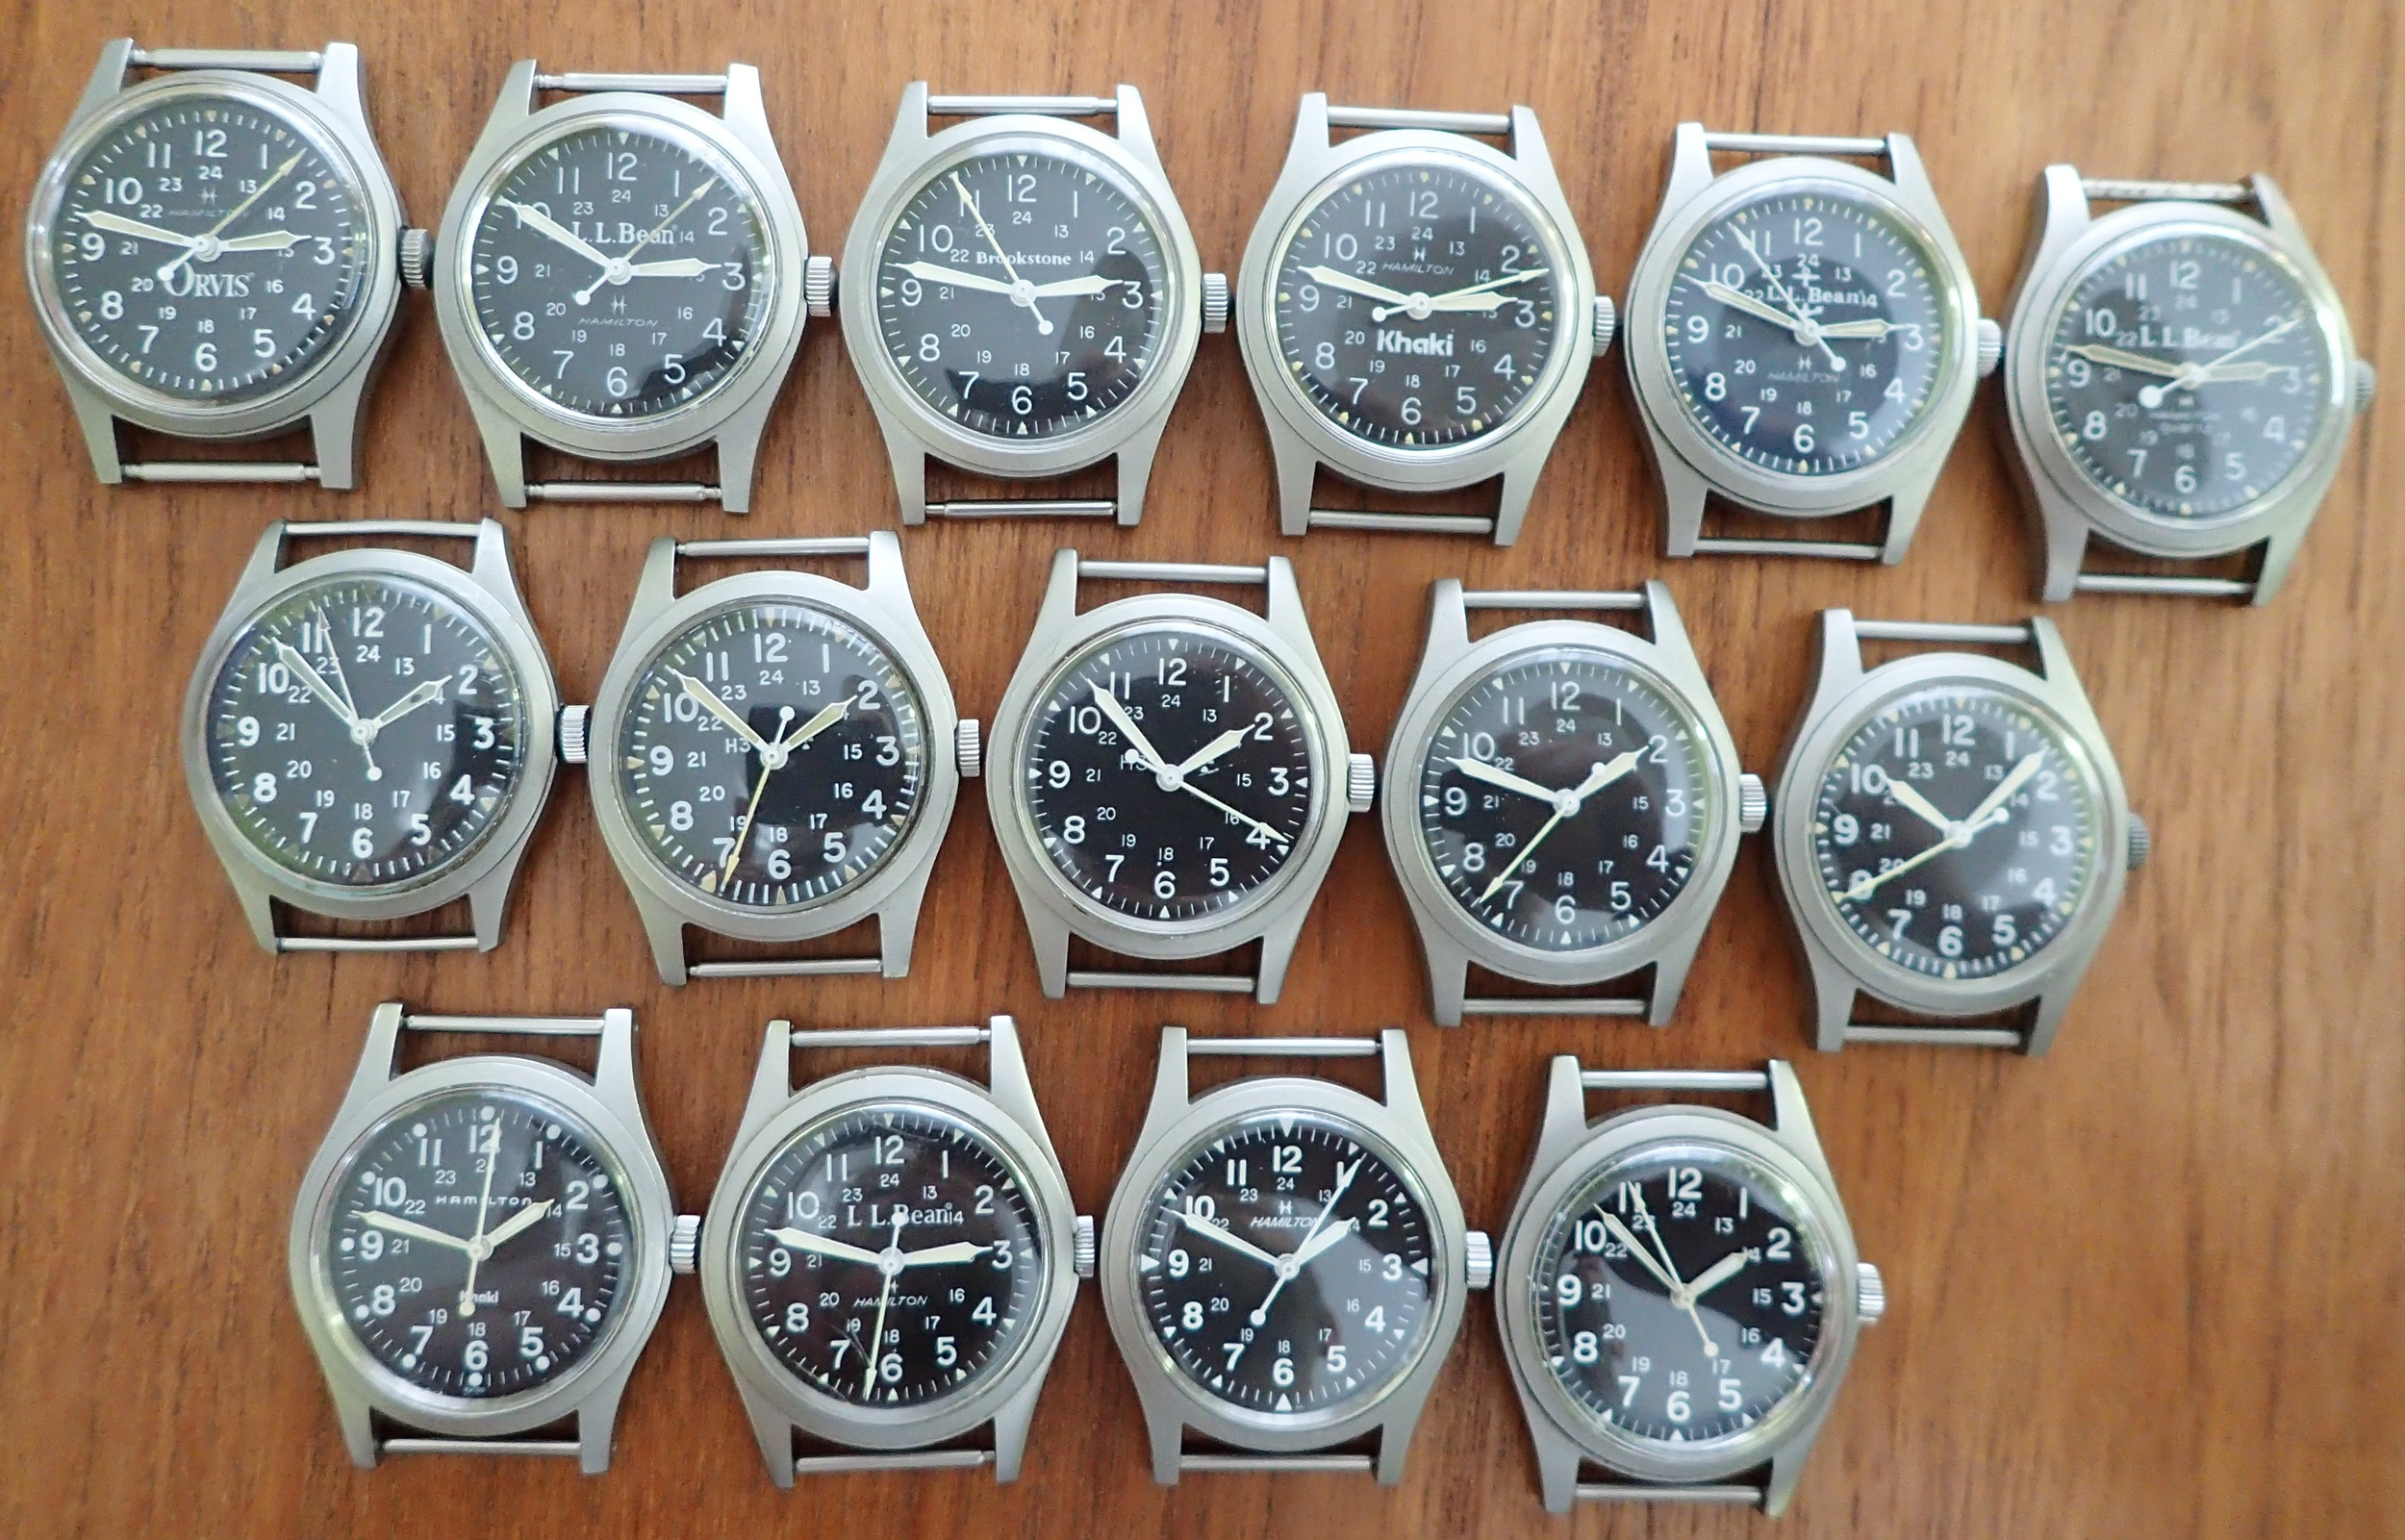 Top row:  case reference 9219.  Middle row: military-issued.  Bottom row: case reference 9415.  All of these watches are unique; there are no redundant examples.